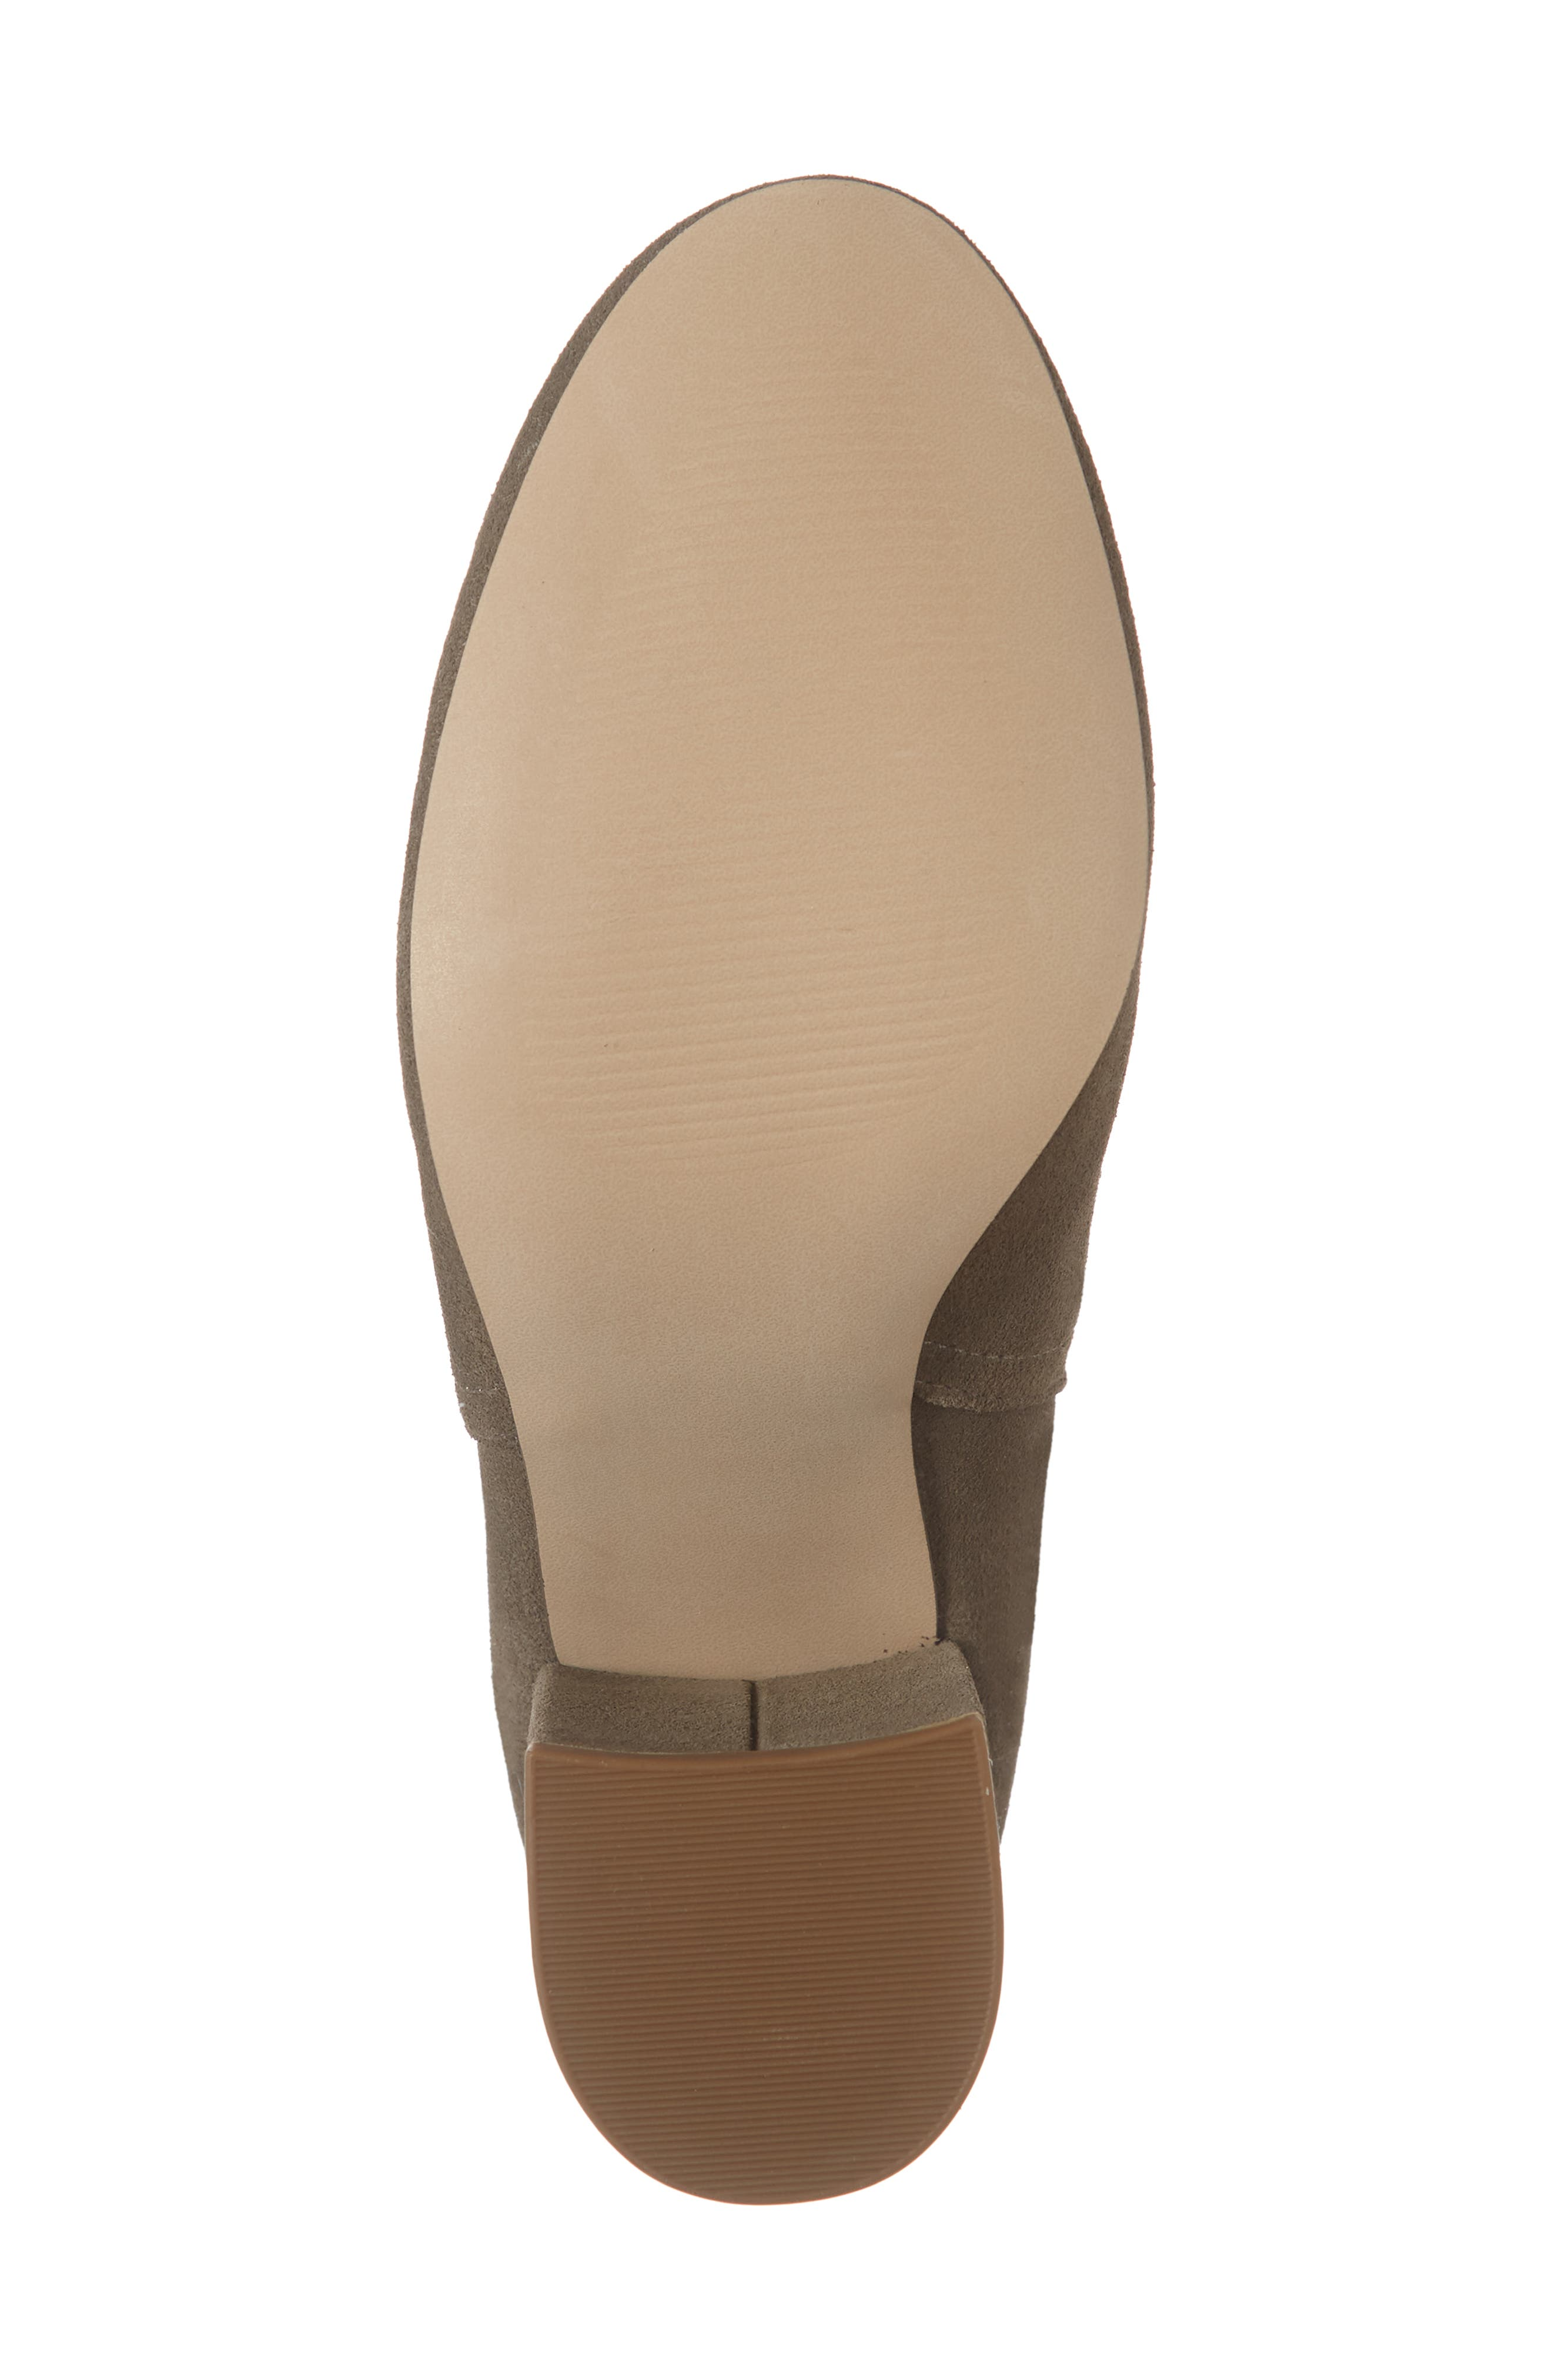 Nayna Bootie,                             Alternate thumbnail 6, color,                             DARK TAUPE